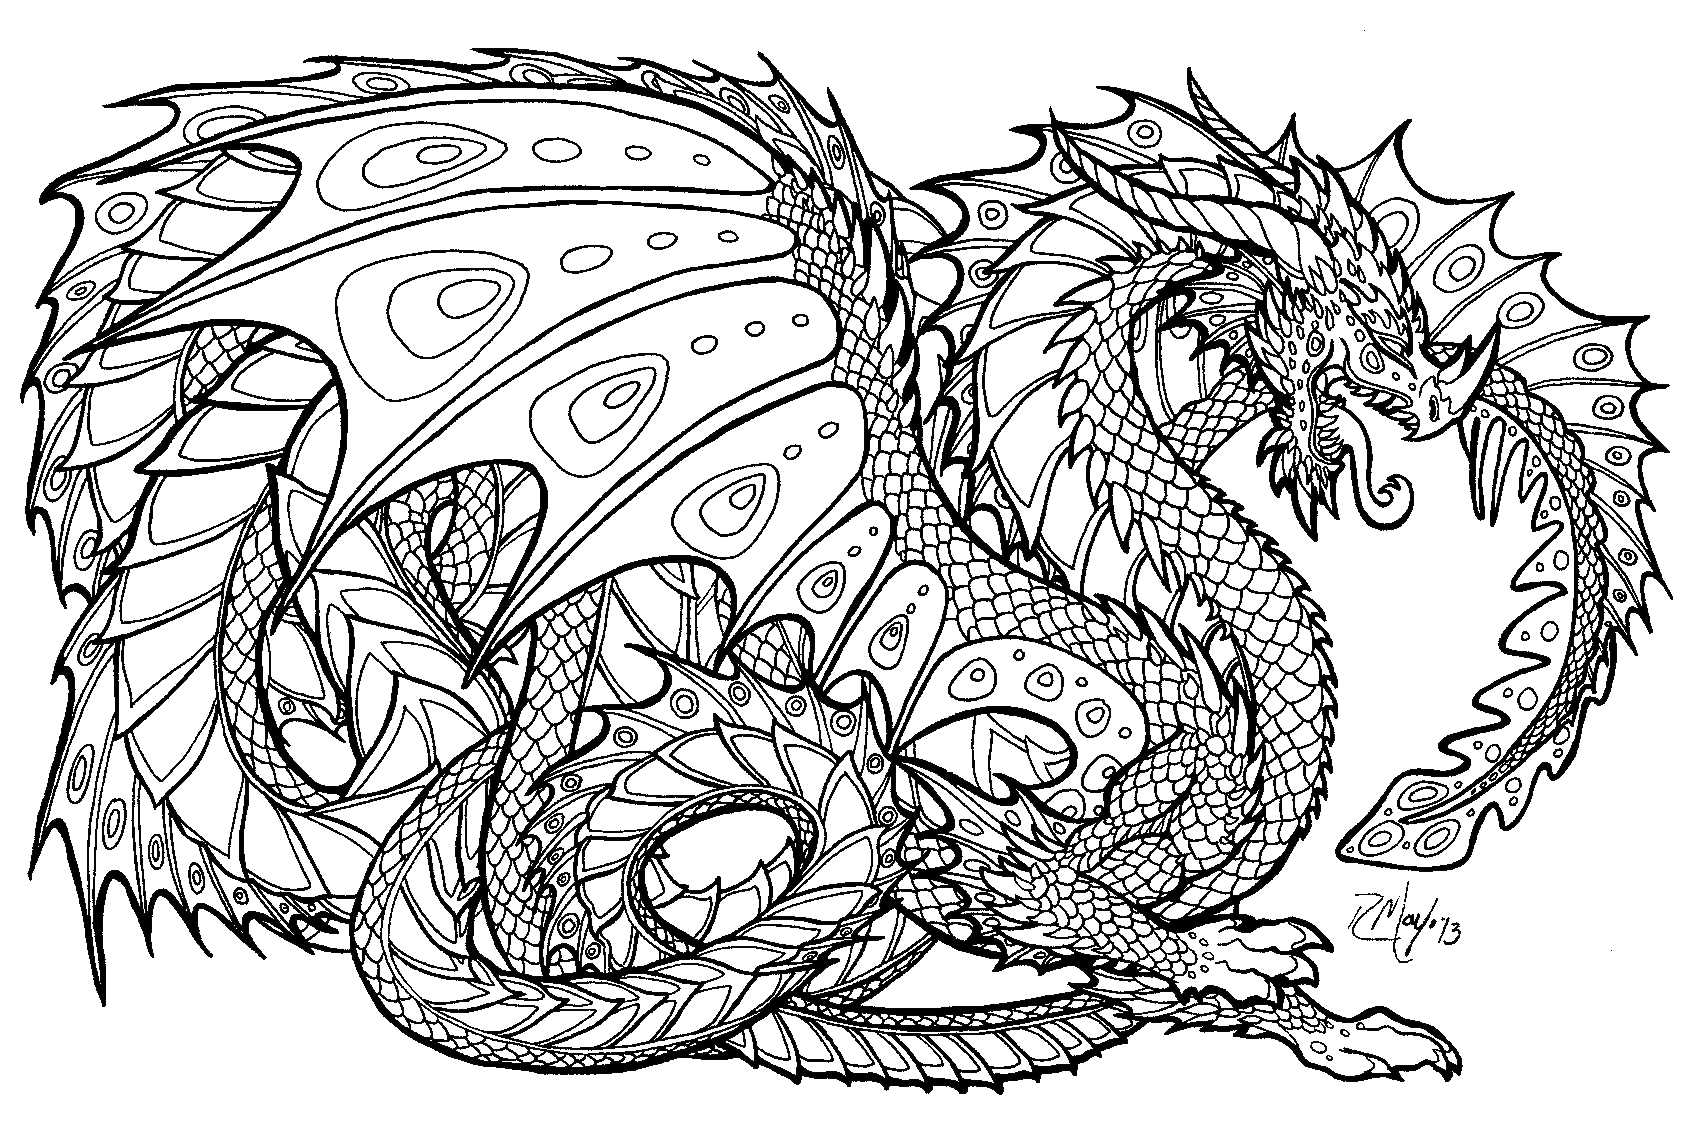 - Coloring & Activity Sheets - Spanish Fort Public Library